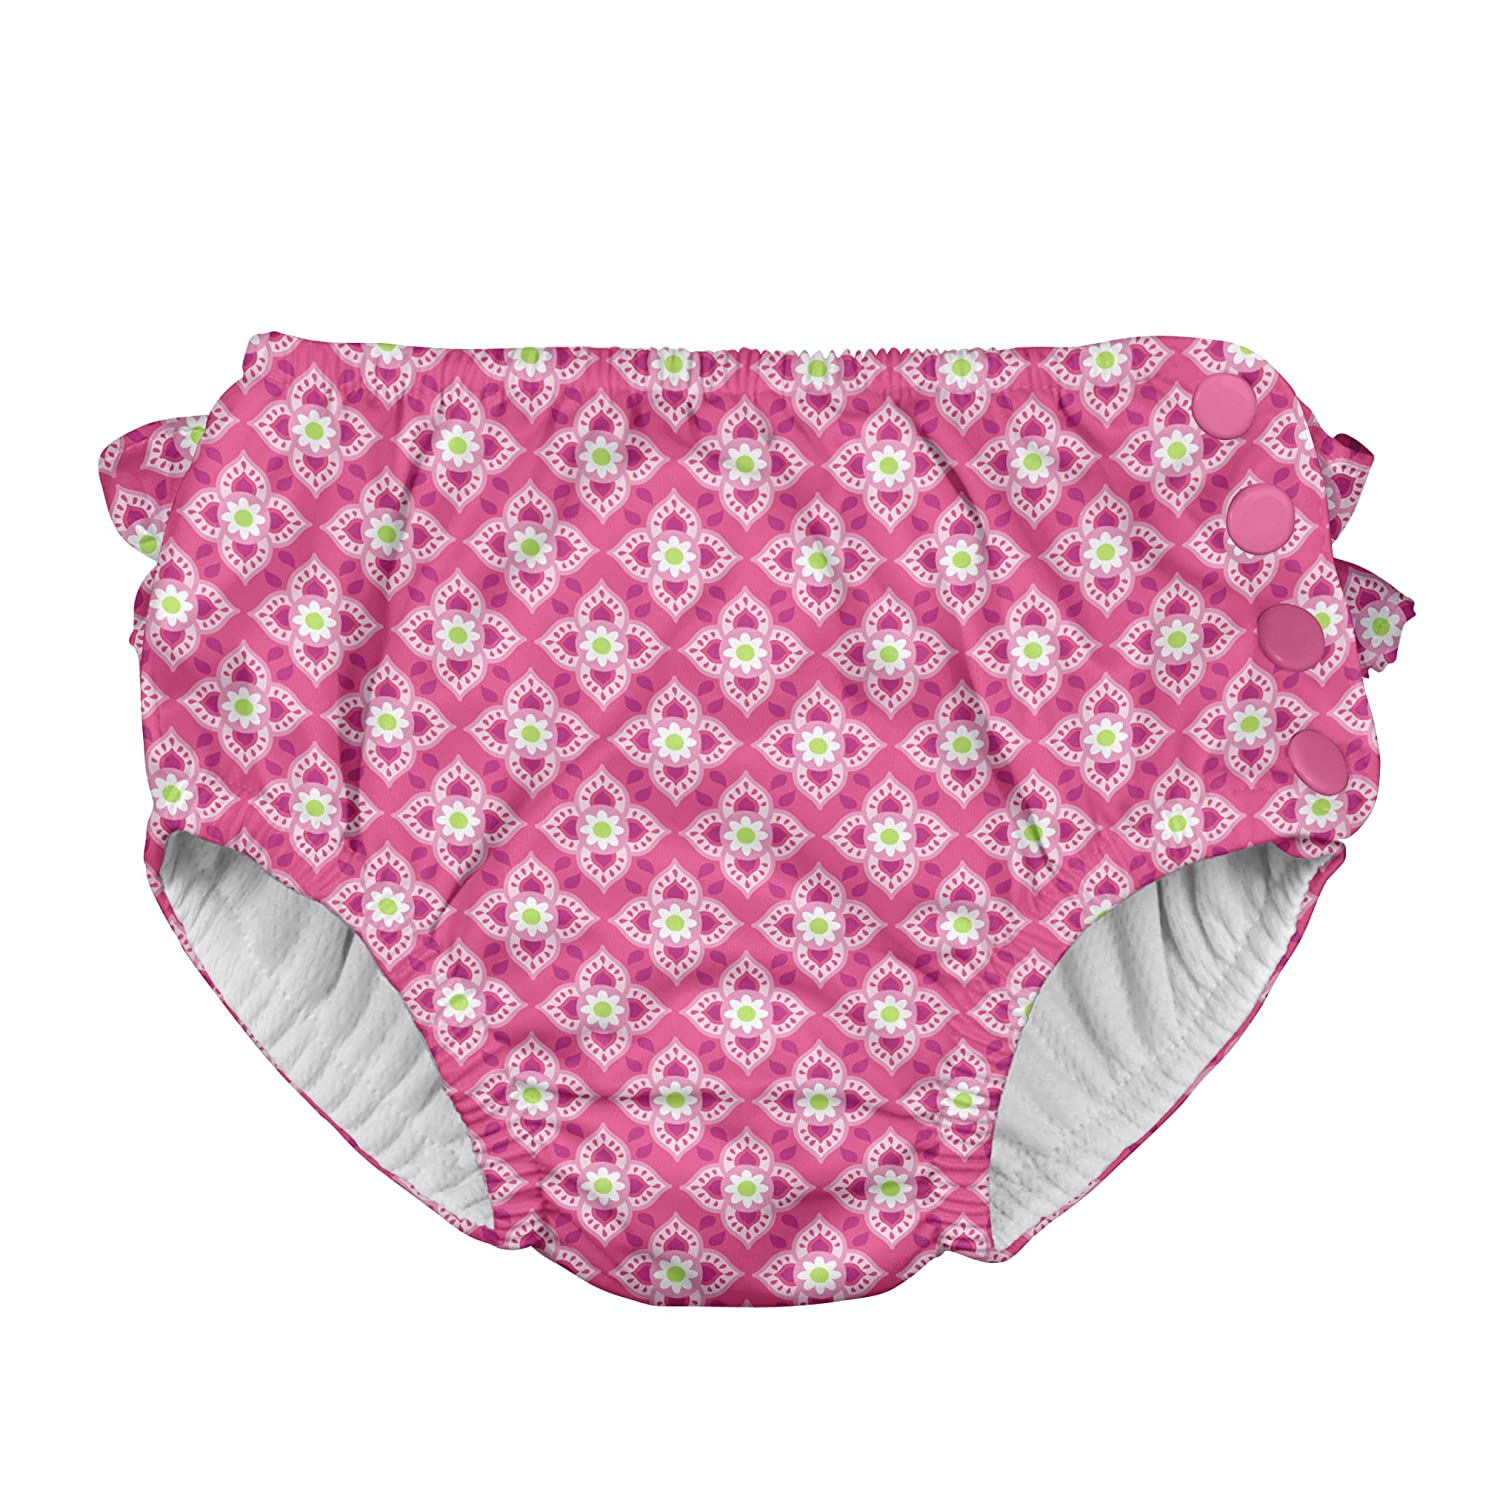 i play. Baby Girls' Ruffle Snap Reusable Absorbent Swim Diaper i play Children' s Apparel